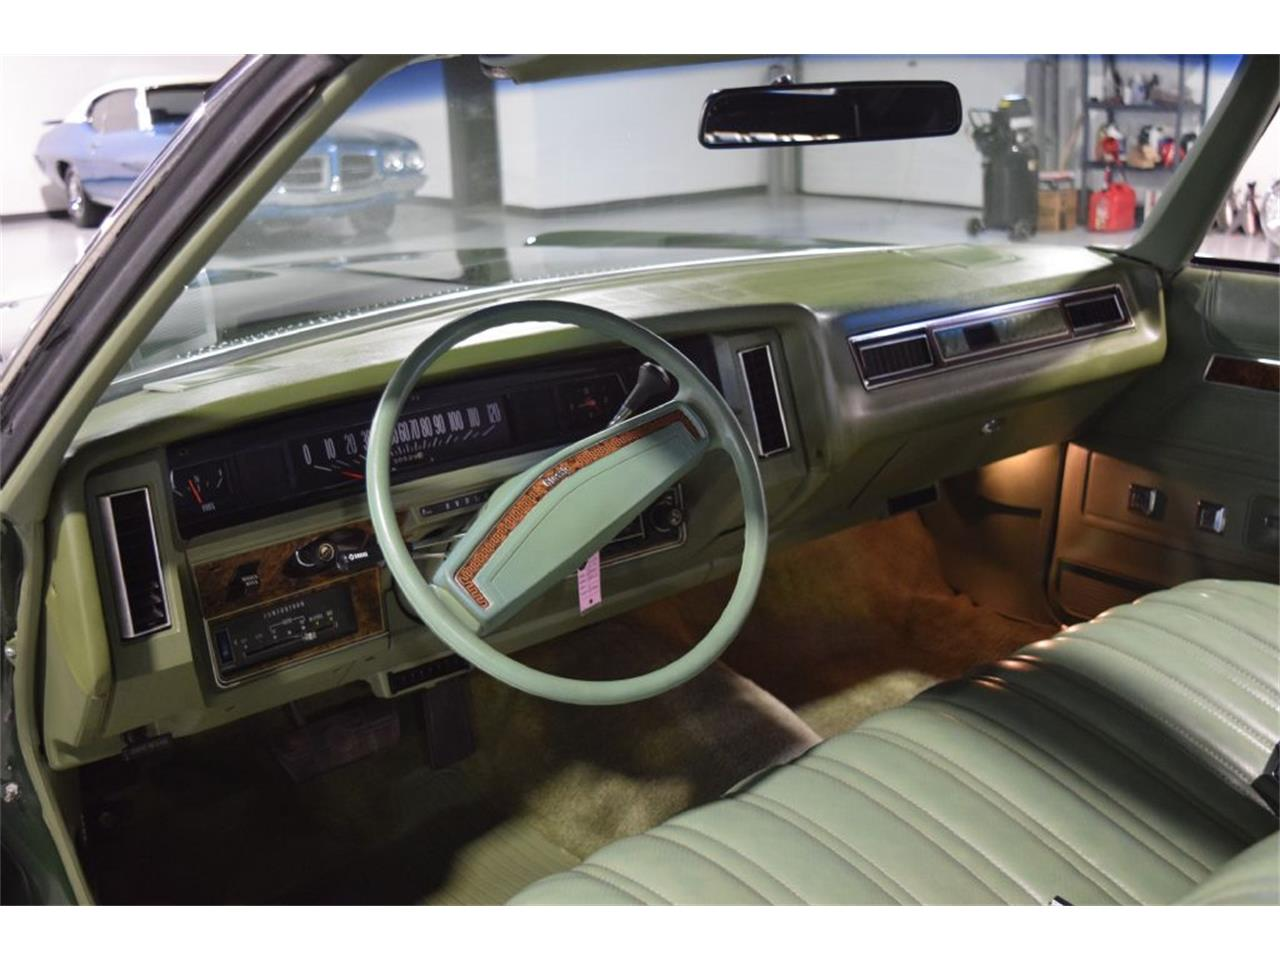 1974 Chevrolet Caprice for sale in Sioux City, IA – photo 13